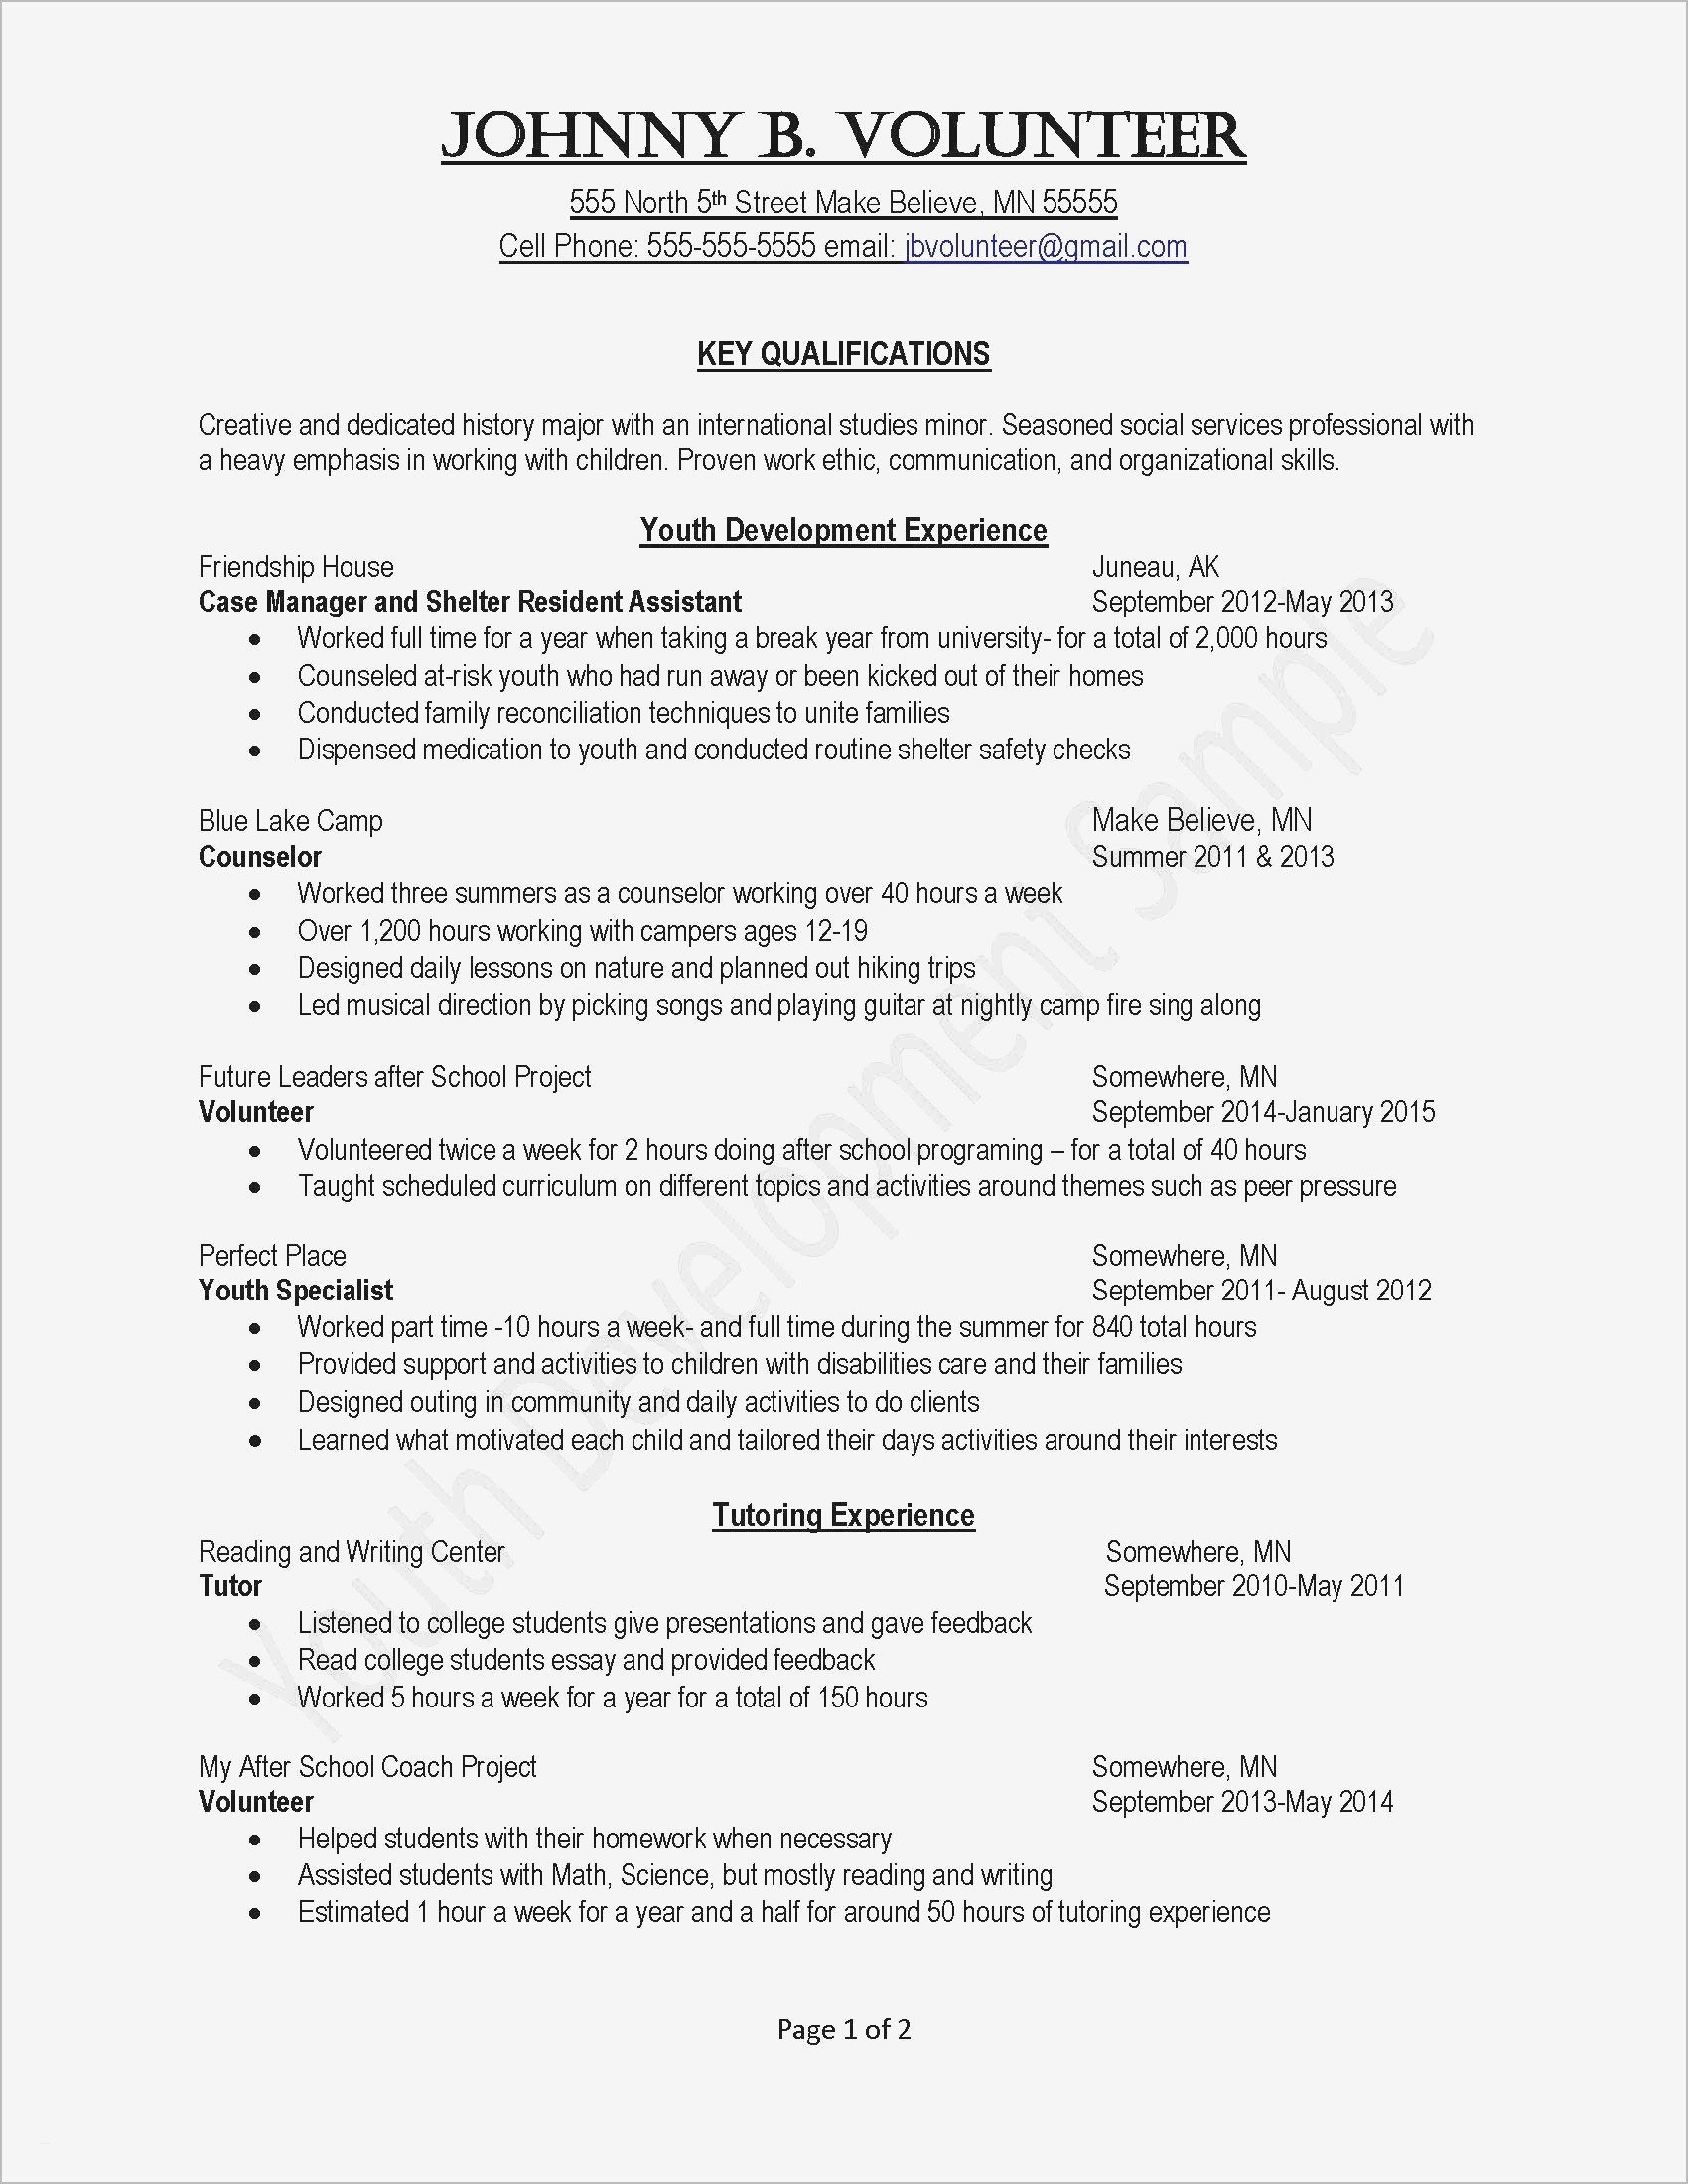 family letter template example-Activities Resume Template Valid Job Fer Letter Template Us Copy Od Consultant Cover Letter Fungram 20-l